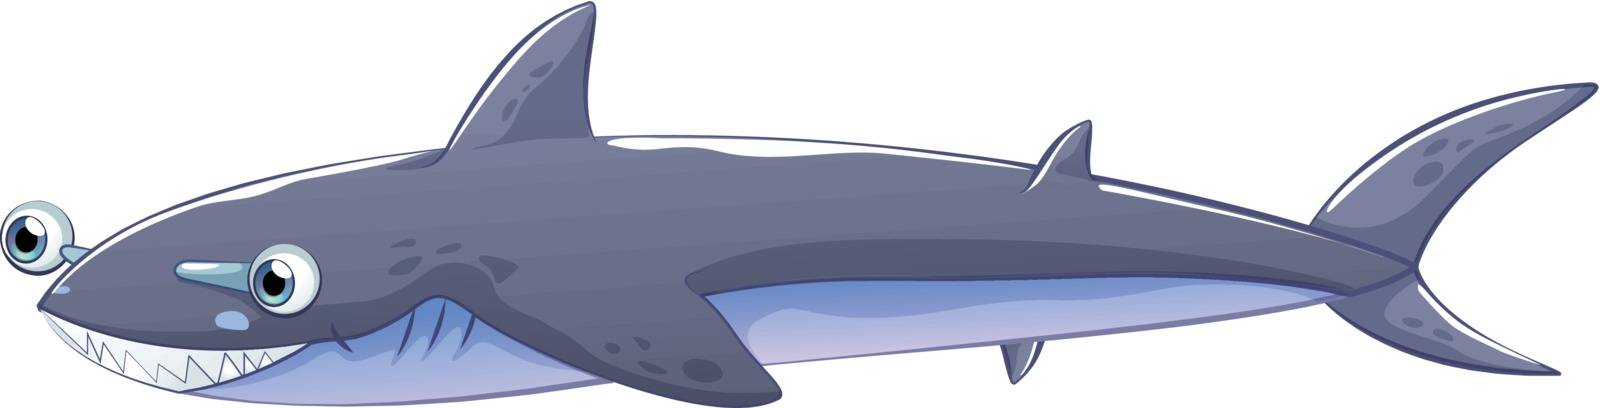 Illustration of a gray shark on a white background